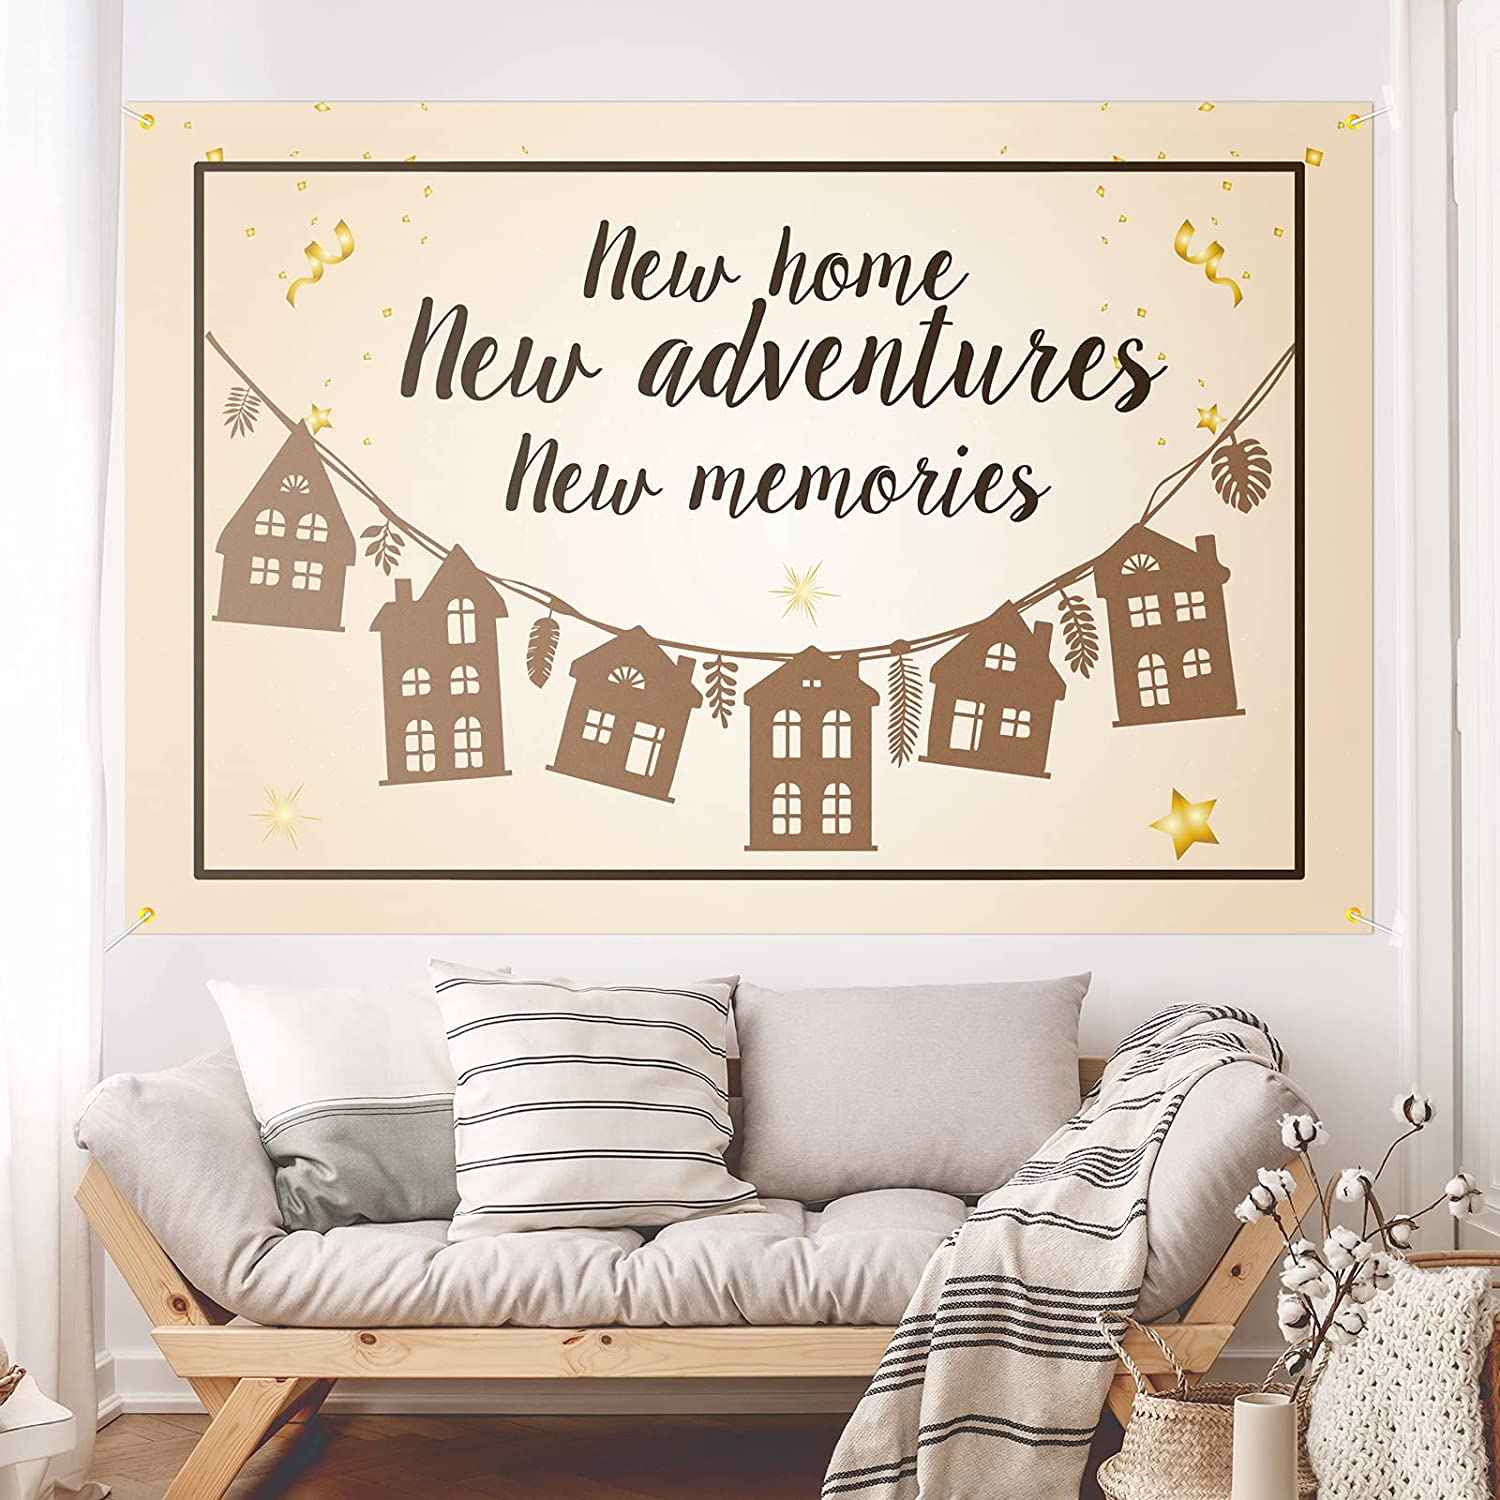 New Home New Adventures New Memories Backdrop Banner Decor Brown – Housewarming Party Theme Decorations New House for Women or Men Supplies